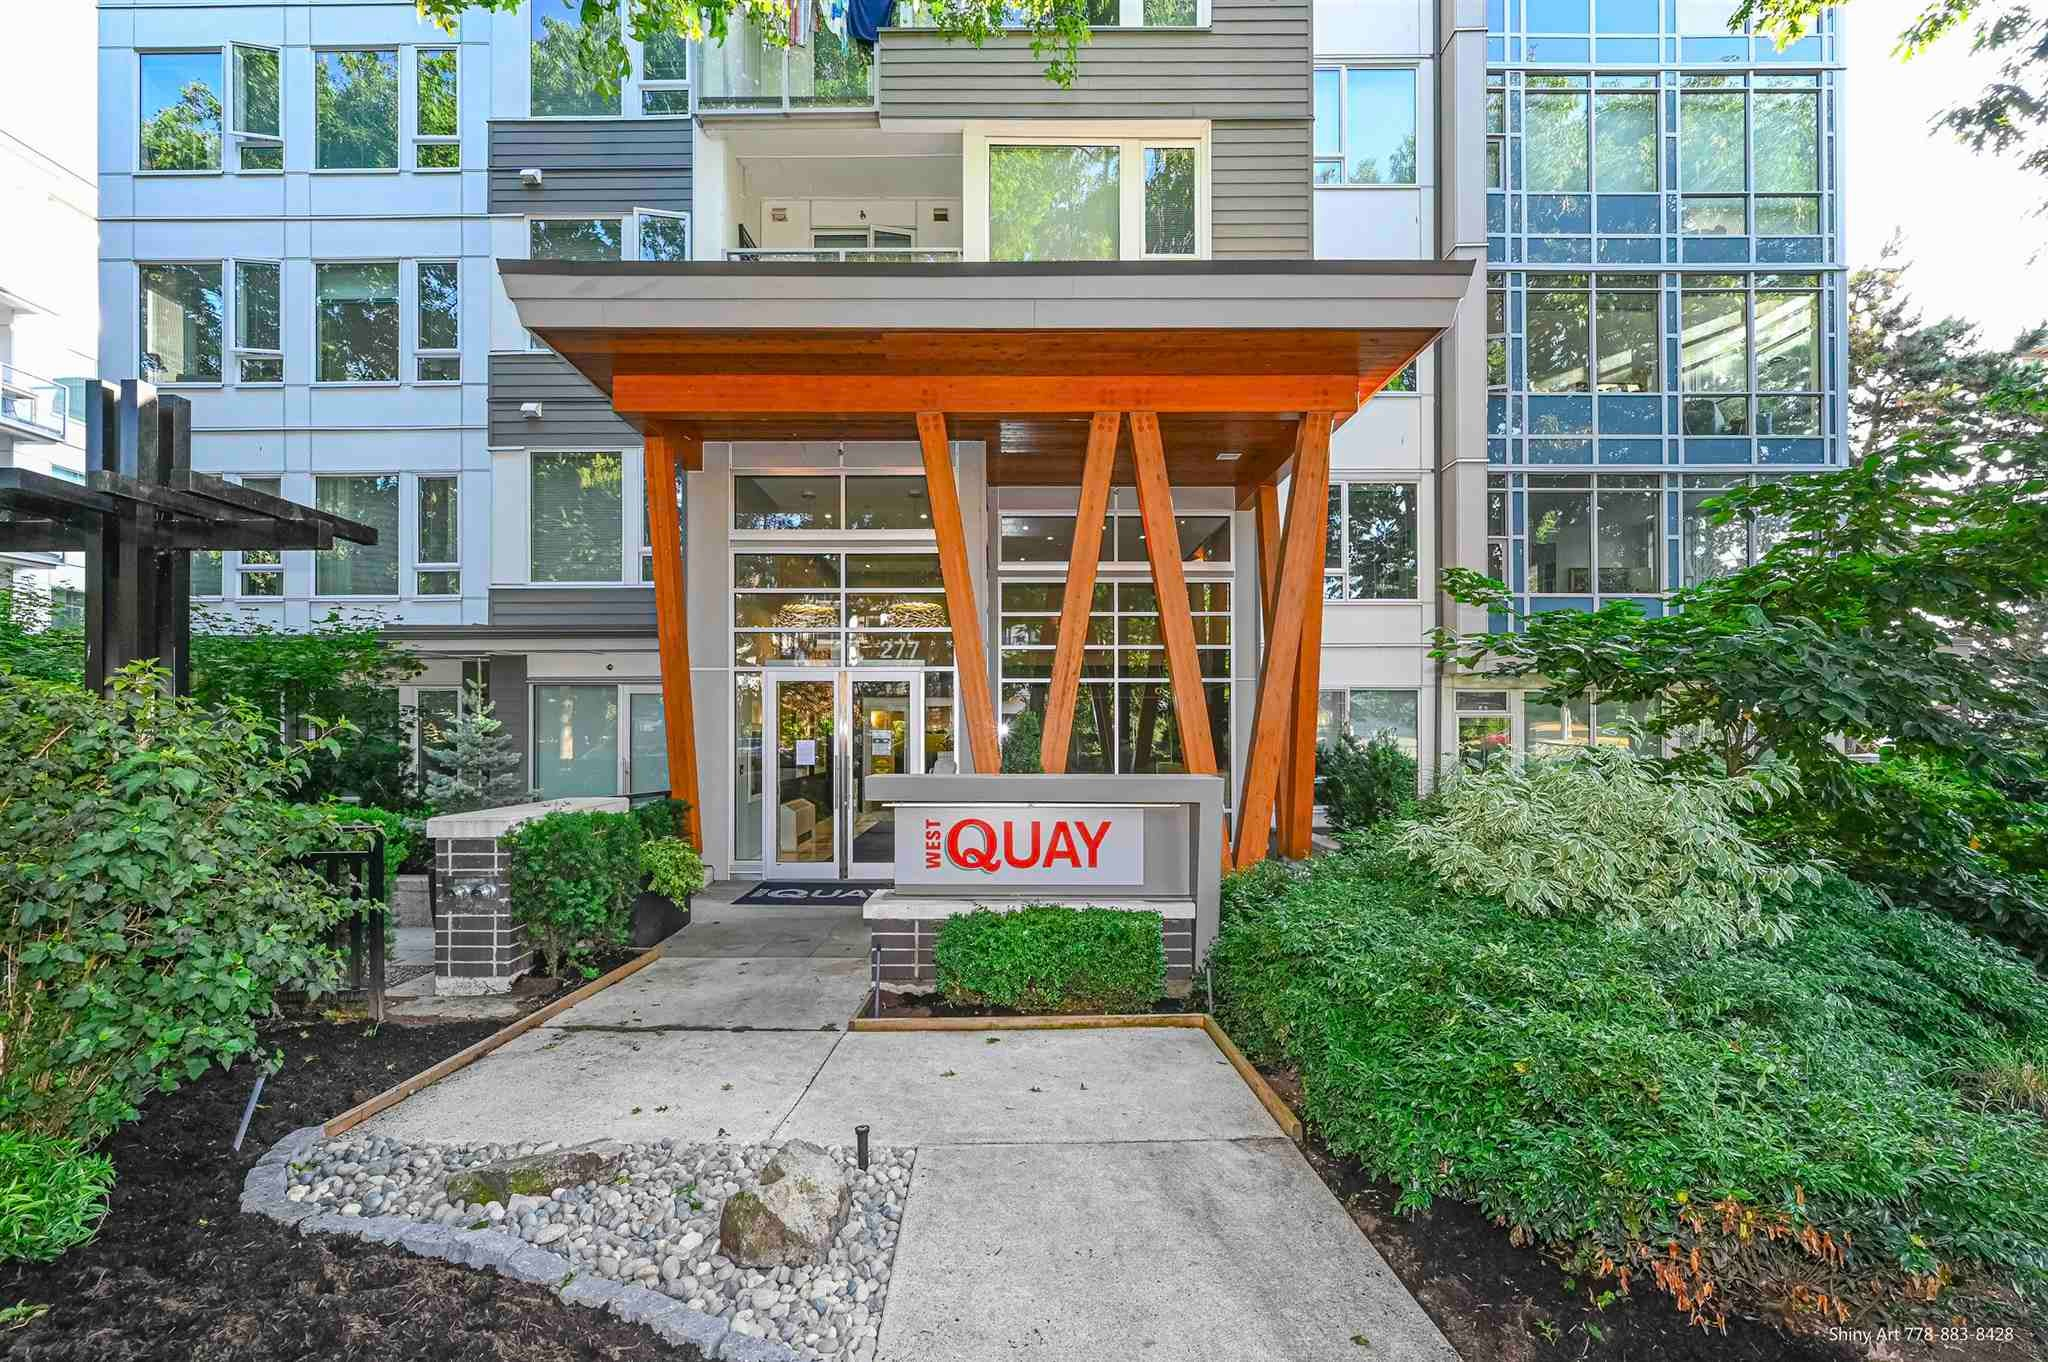 201 277 W 1ST STREET - Lower Lonsdale Apartment/Condo for sale, 1 Bedroom (R2602466)